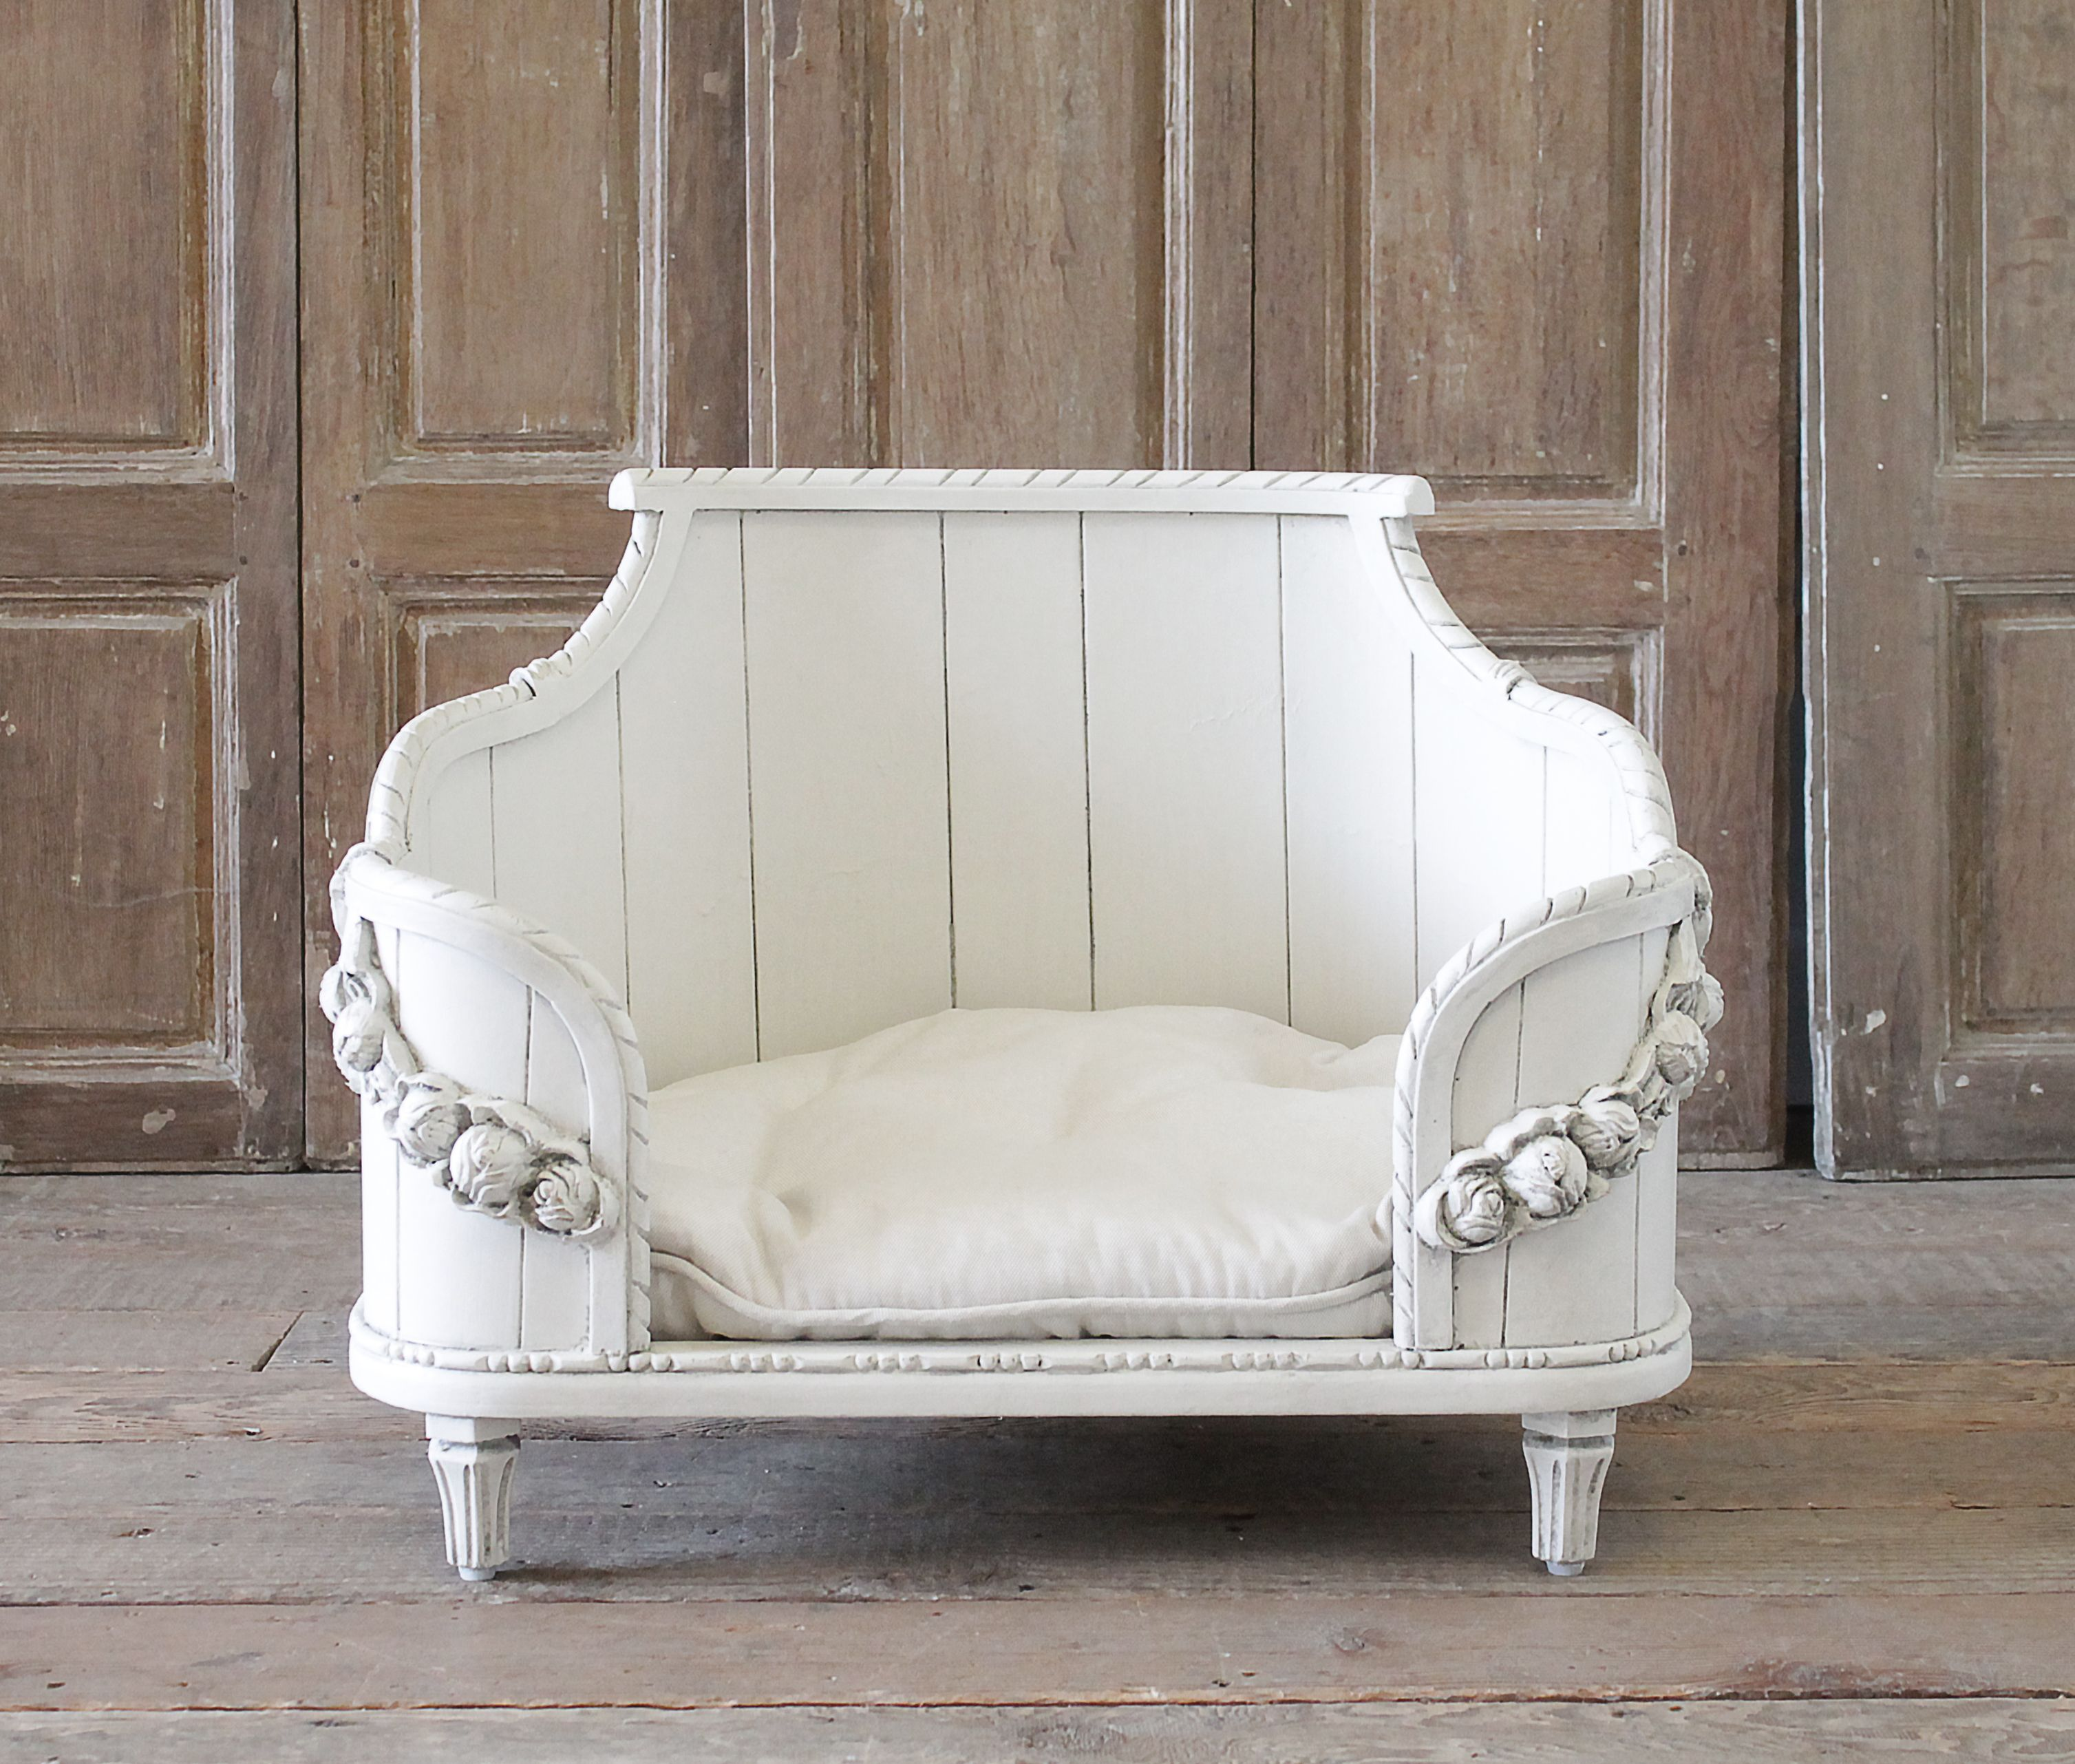 Coming Soon... French style homes, French country, Bed